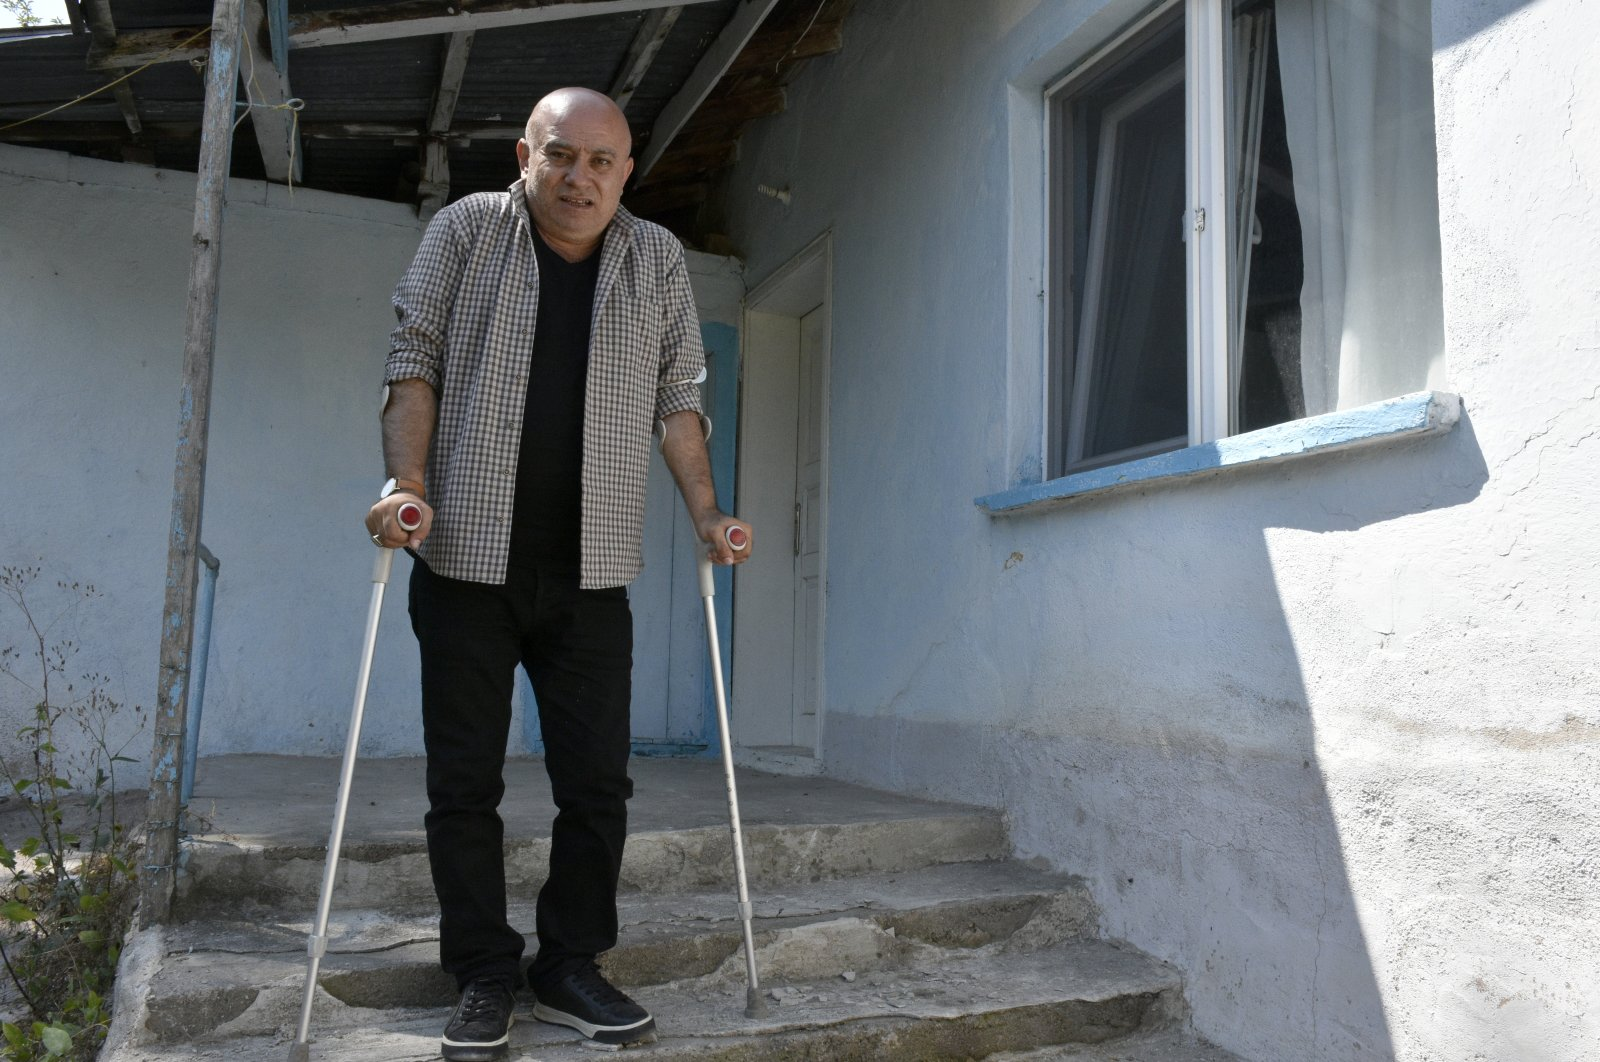 Yaşar Parlak stands outside his house, leaning on his crutches, in Gümüşhane, northern Turkey, July 14, 2021. Parlak was left injured by putschists in Istanbul in 2016. (AA PHOTO)